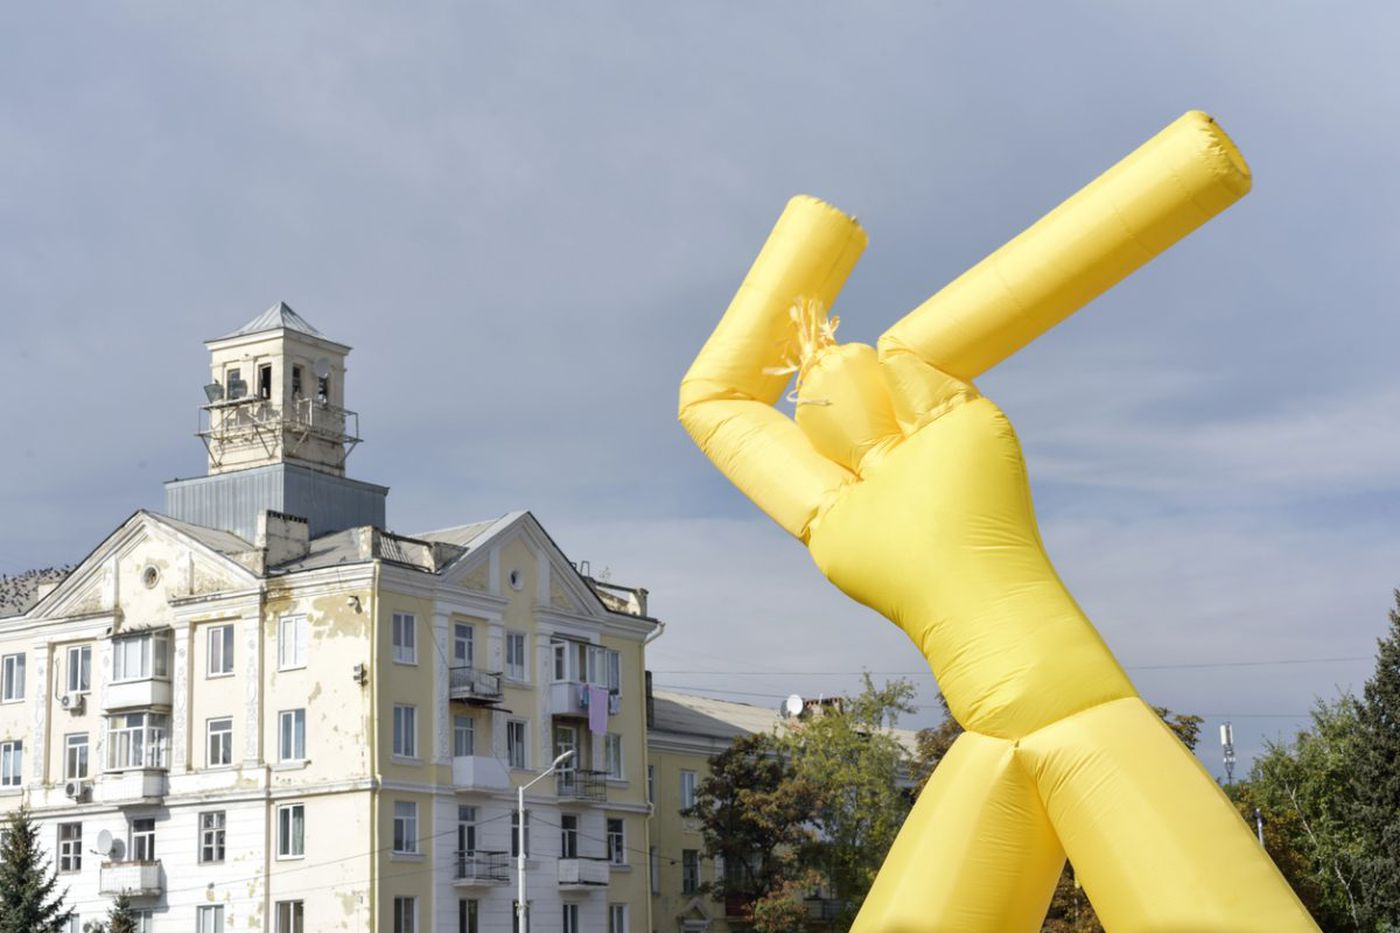 Philly bill could tack down inflatable tube men